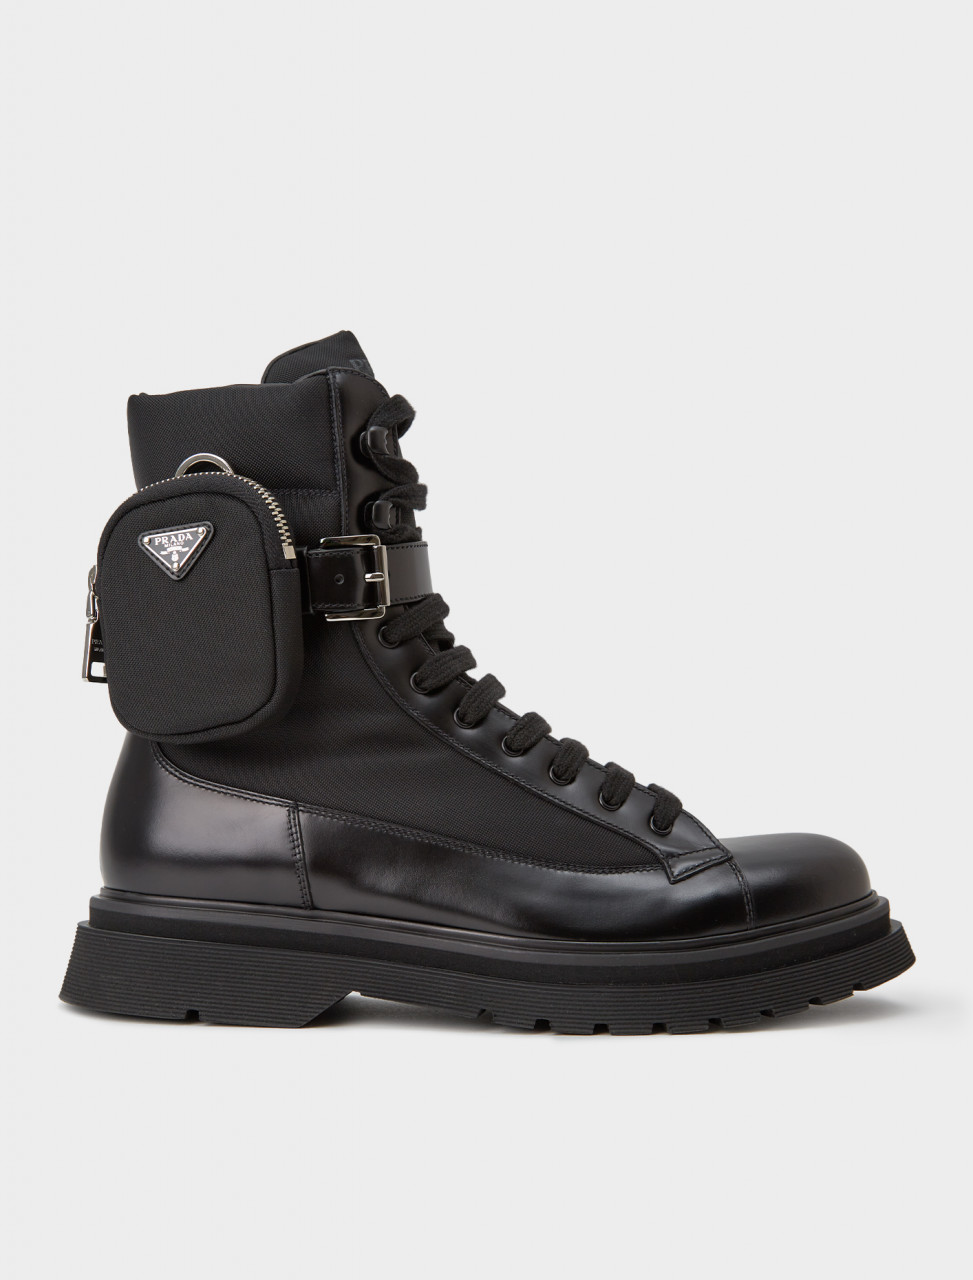 242-2TE169-3KZP-F0002 PRADA Leather Combat Boots with Removable Nylon Pouch